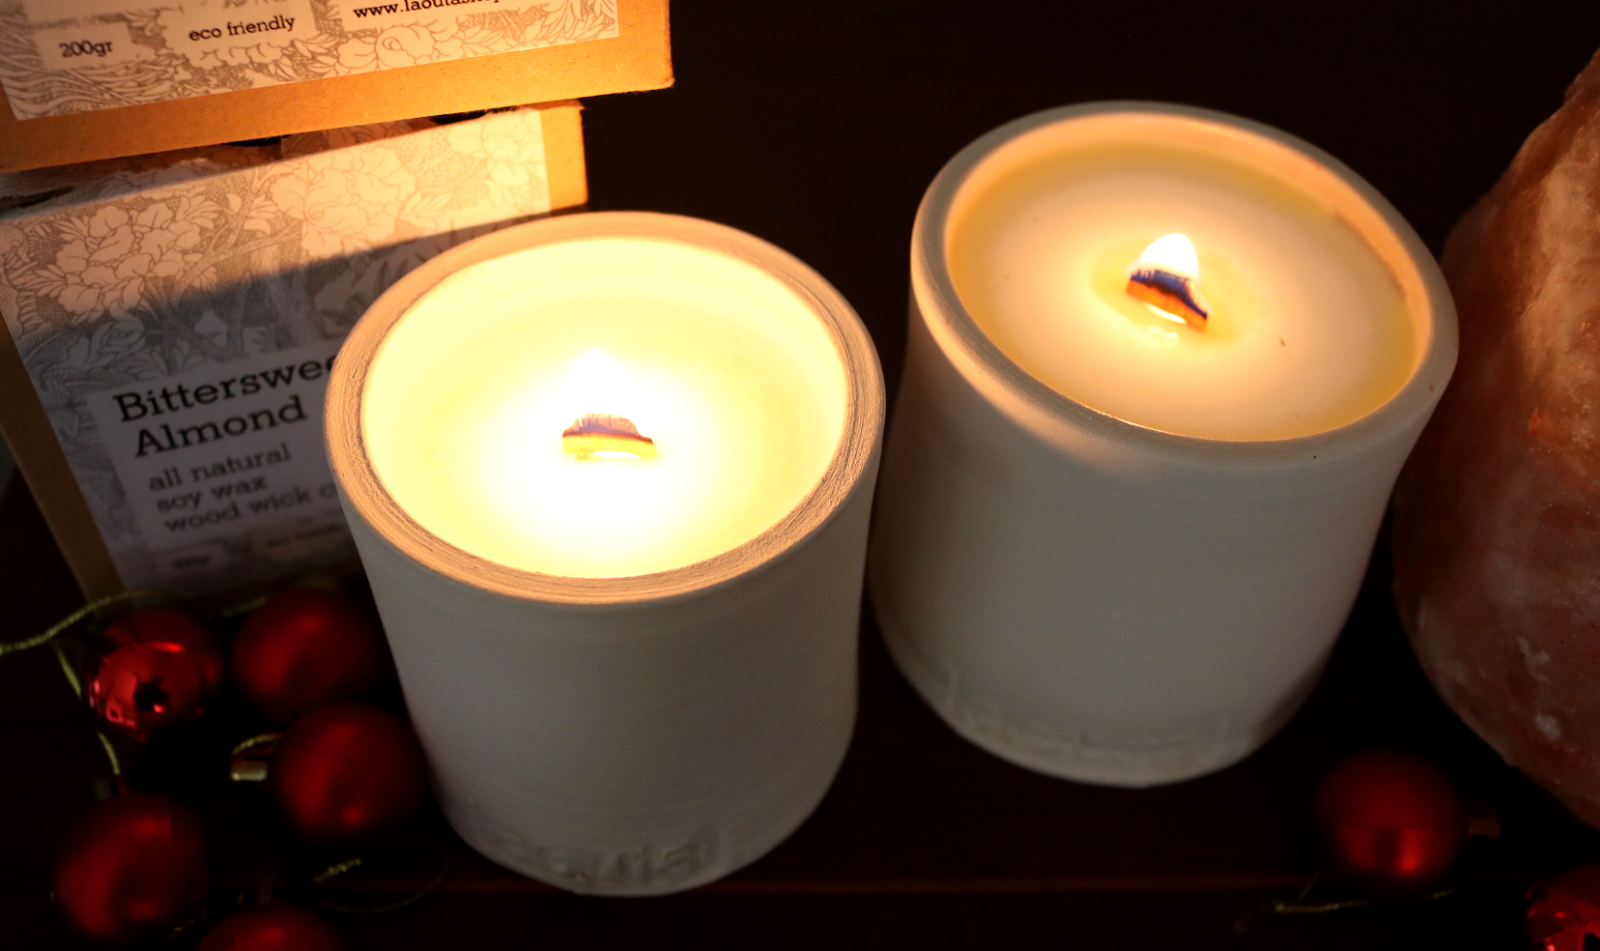 Christmas Gift Guide: Laouta Luxury All Natural Soy Wax Wood Wick Candles review